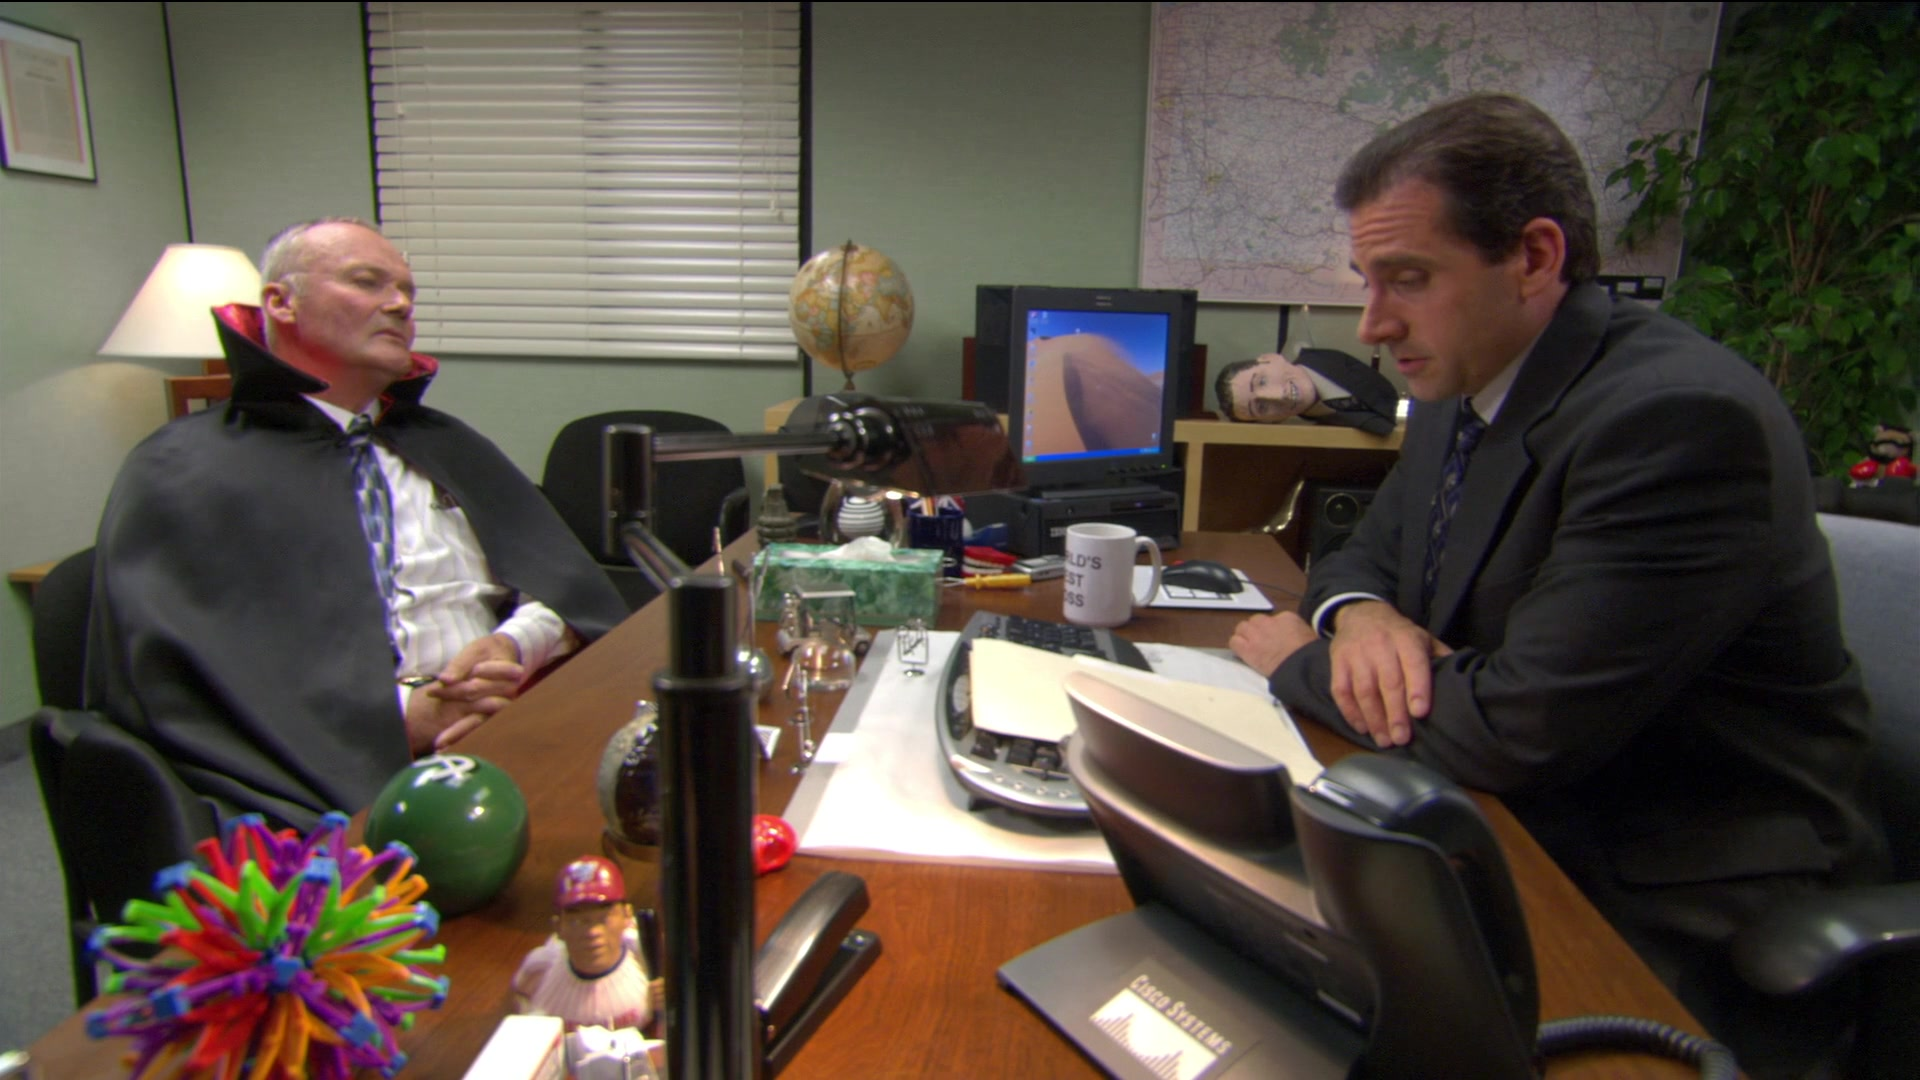 Cisco Telephone Used By Steve Carell Michael Scott In The Office Season 2 Episode 5 Halloween 2005